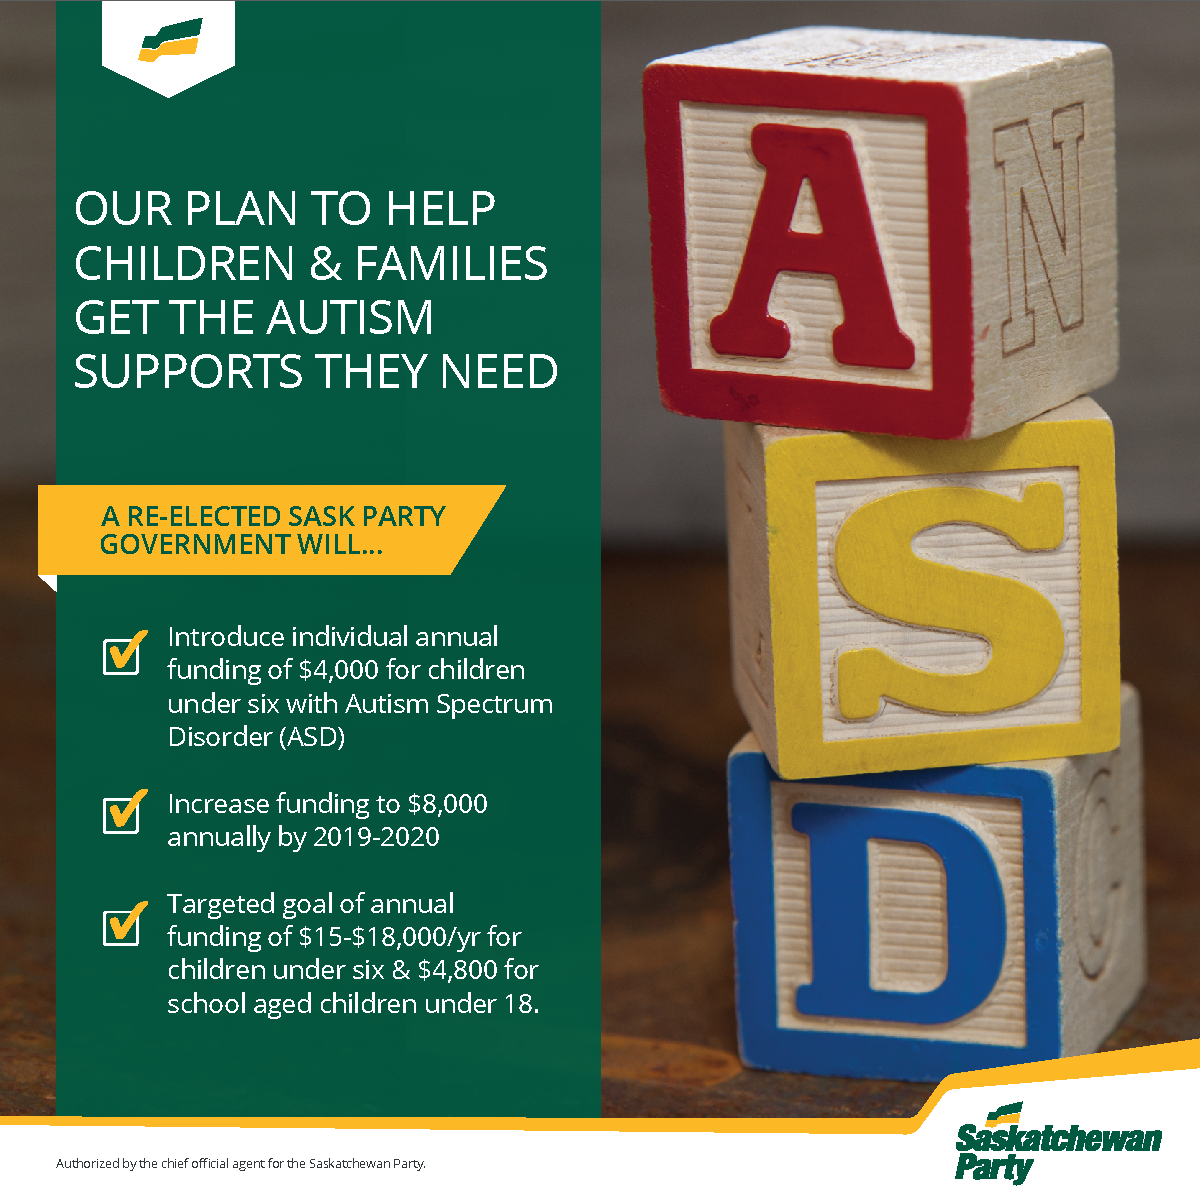 Individualized Funding For Autism Spectrum Disorder